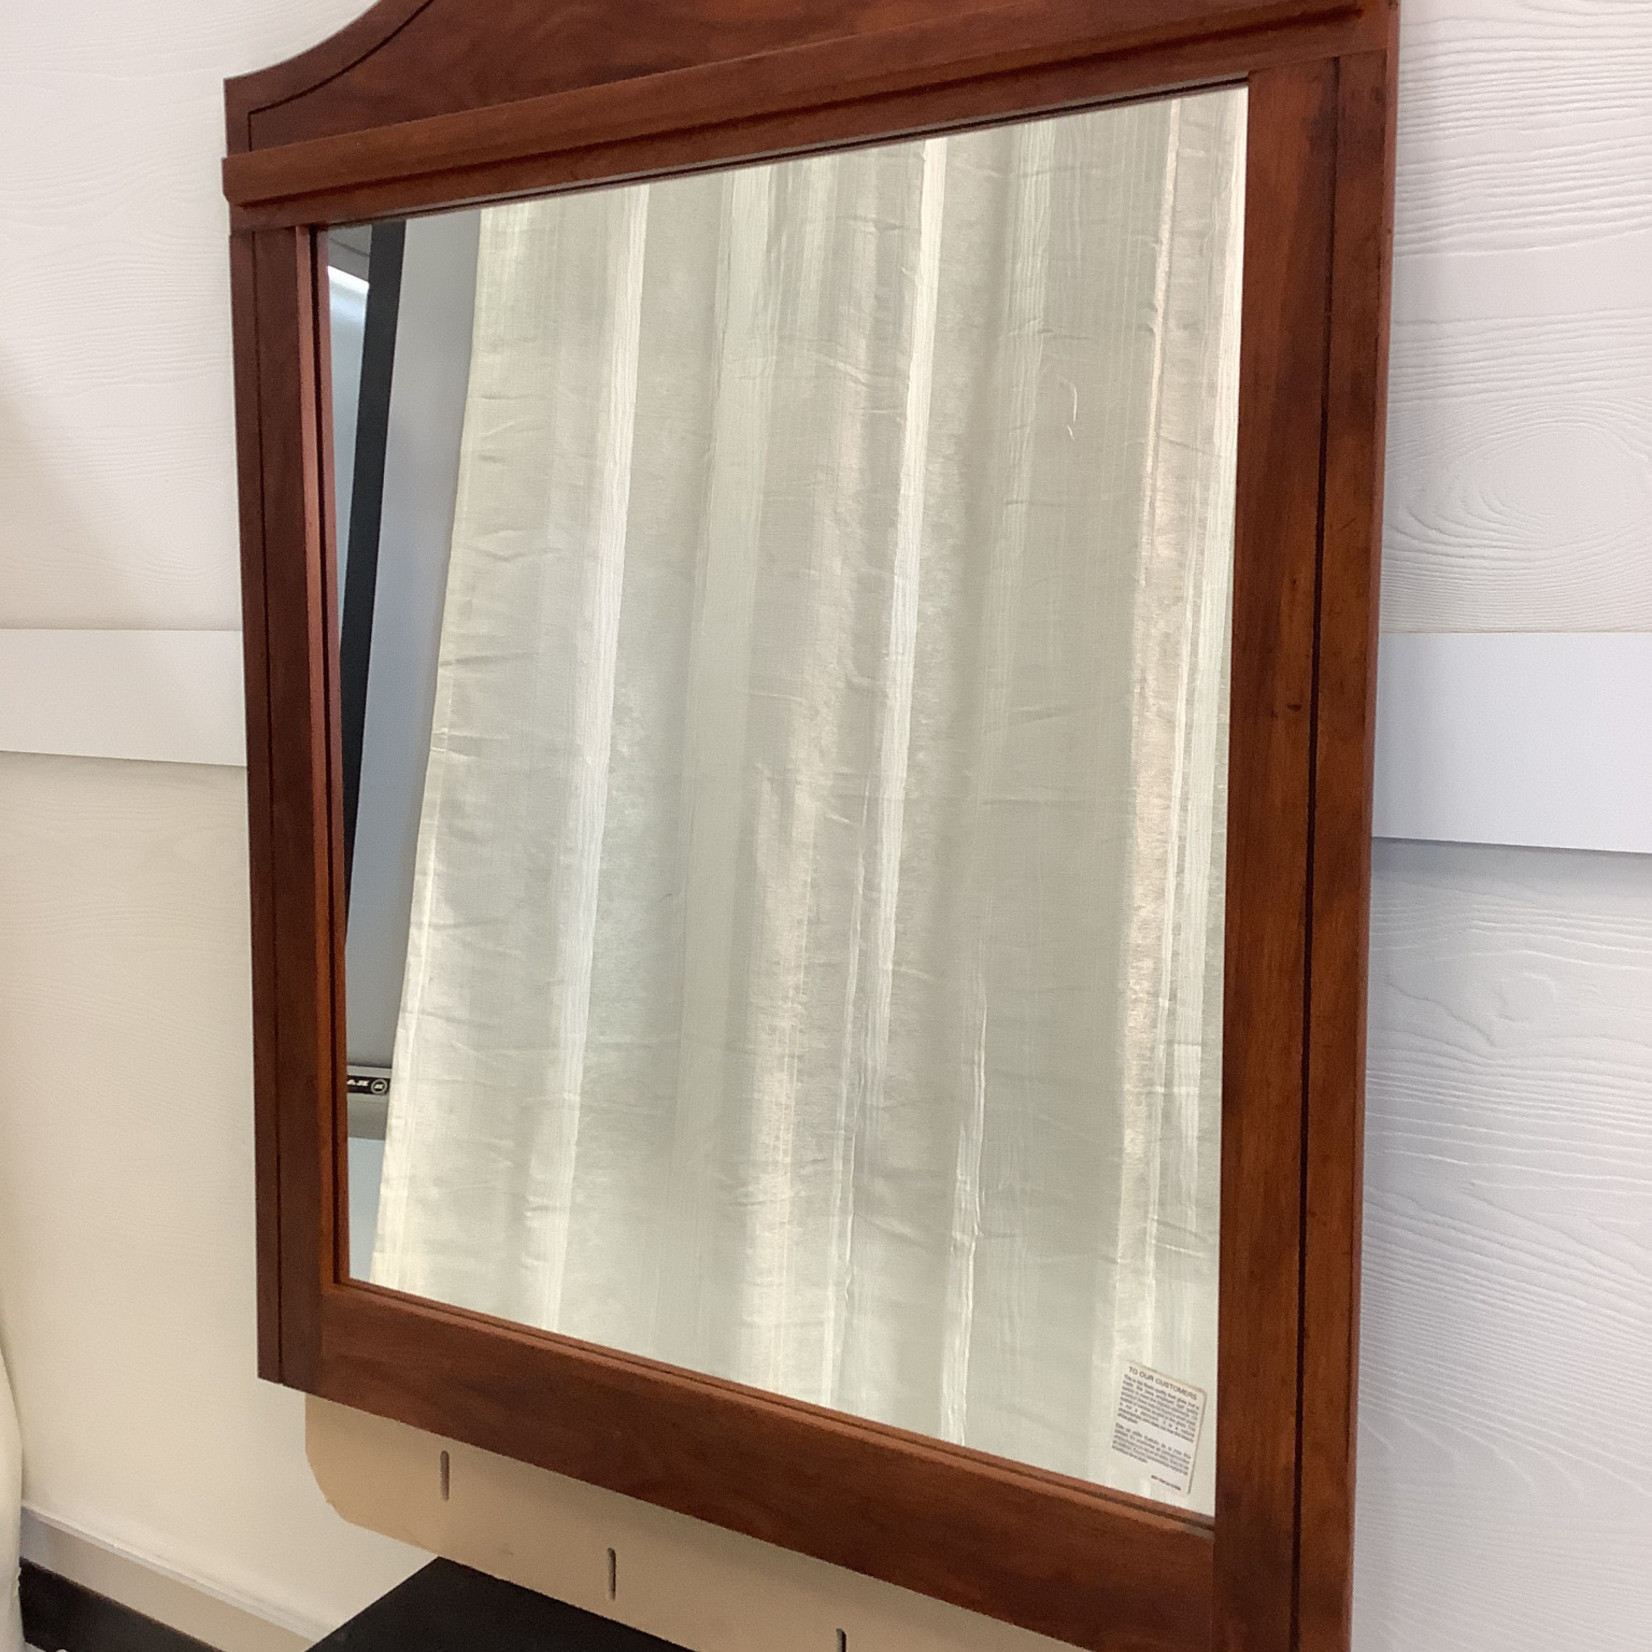 Square mirror with wooden frame